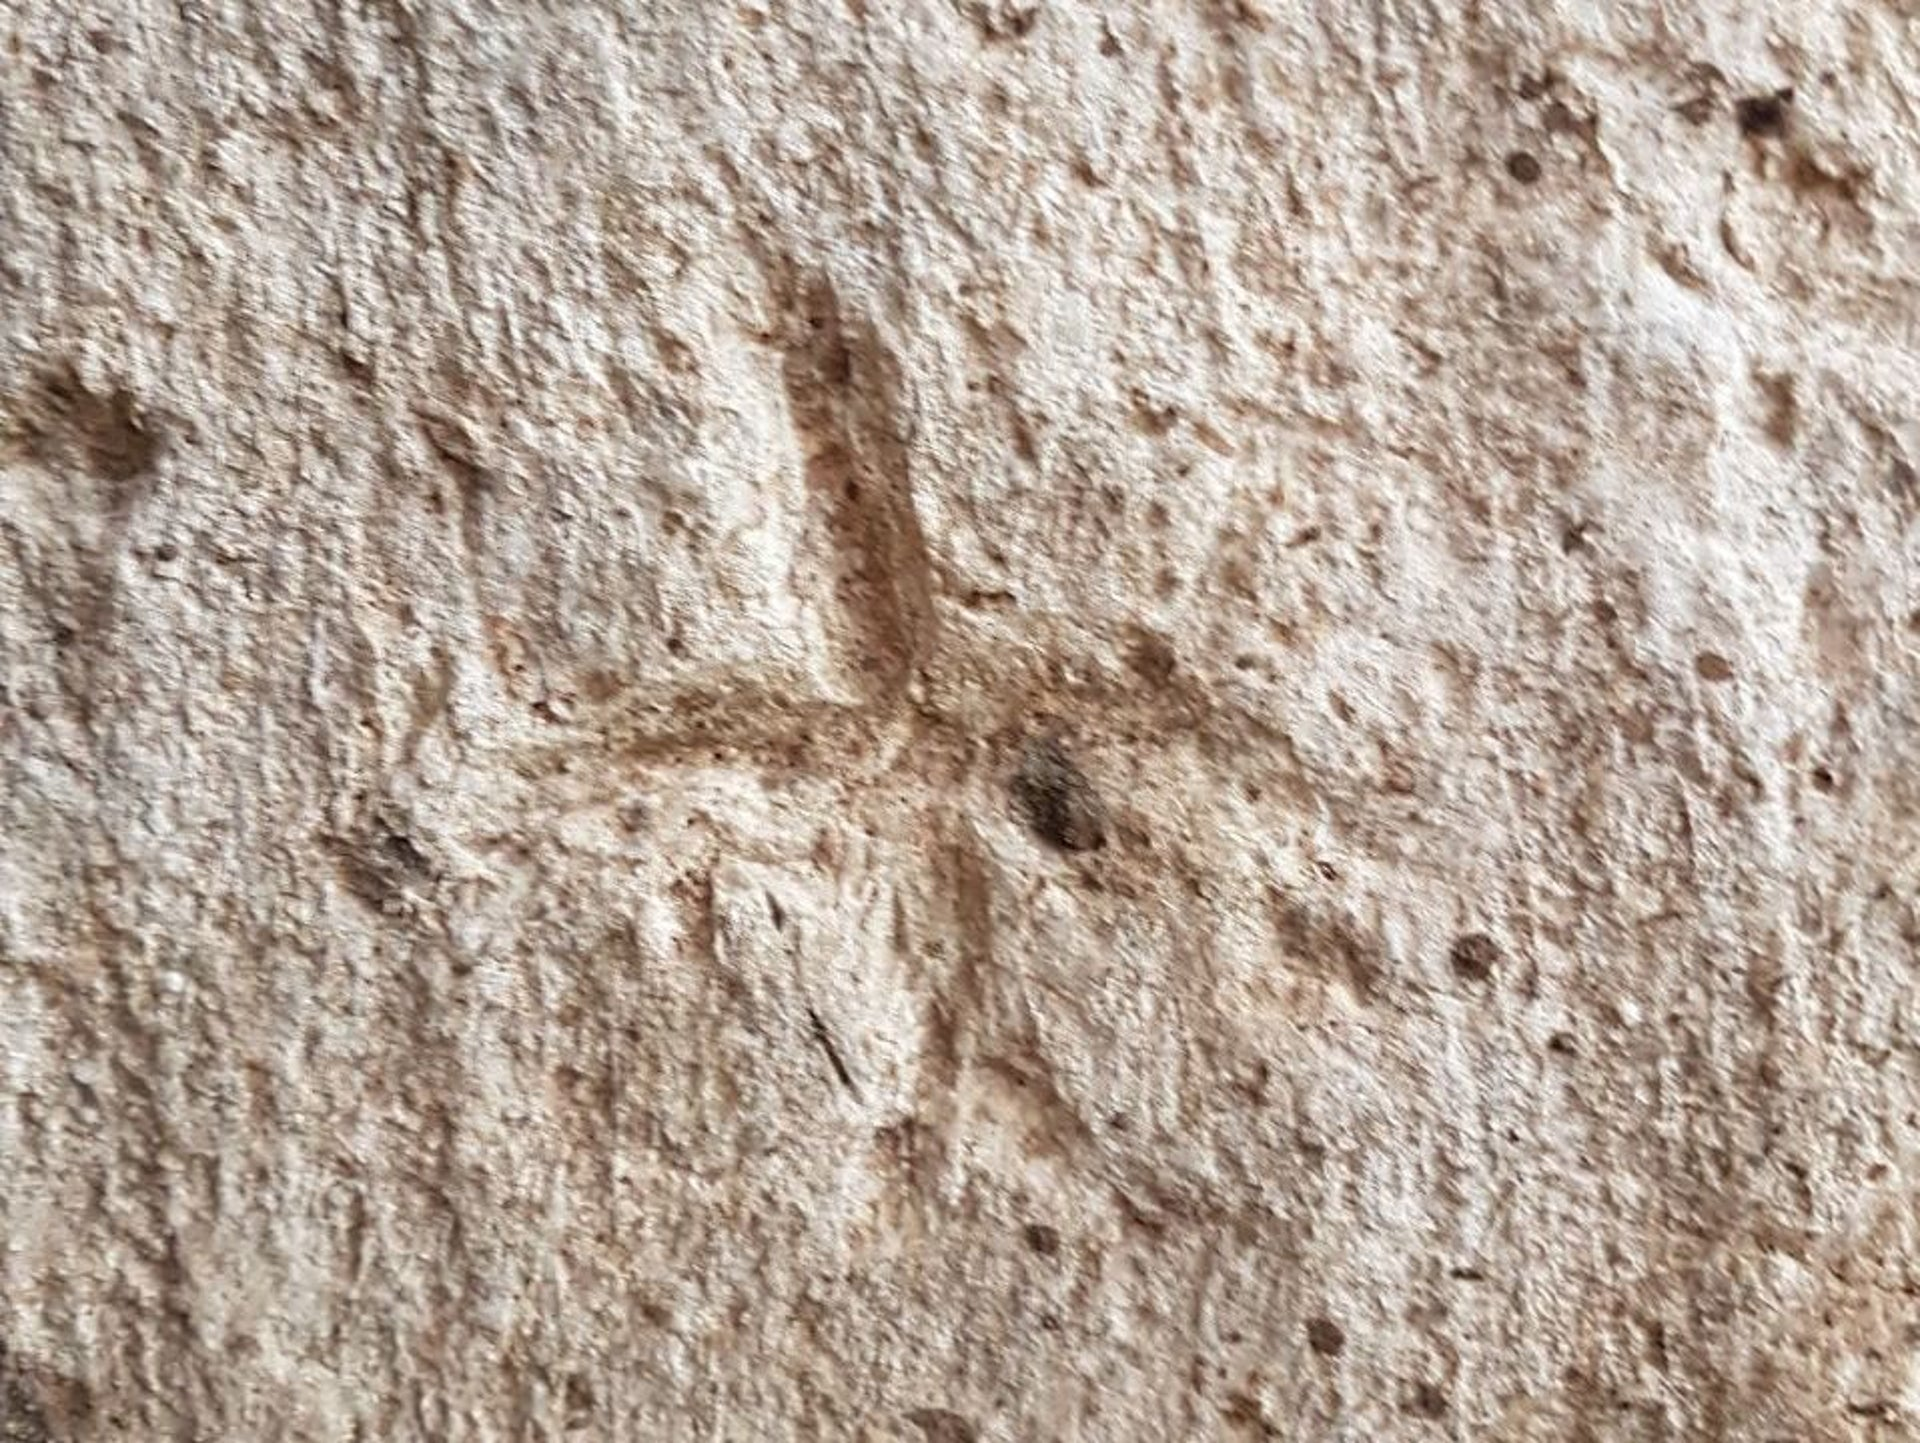 Engravings on the walls: Human figures and crosses found in the vast 2,700-year-old water system found in Rosh HaAyin